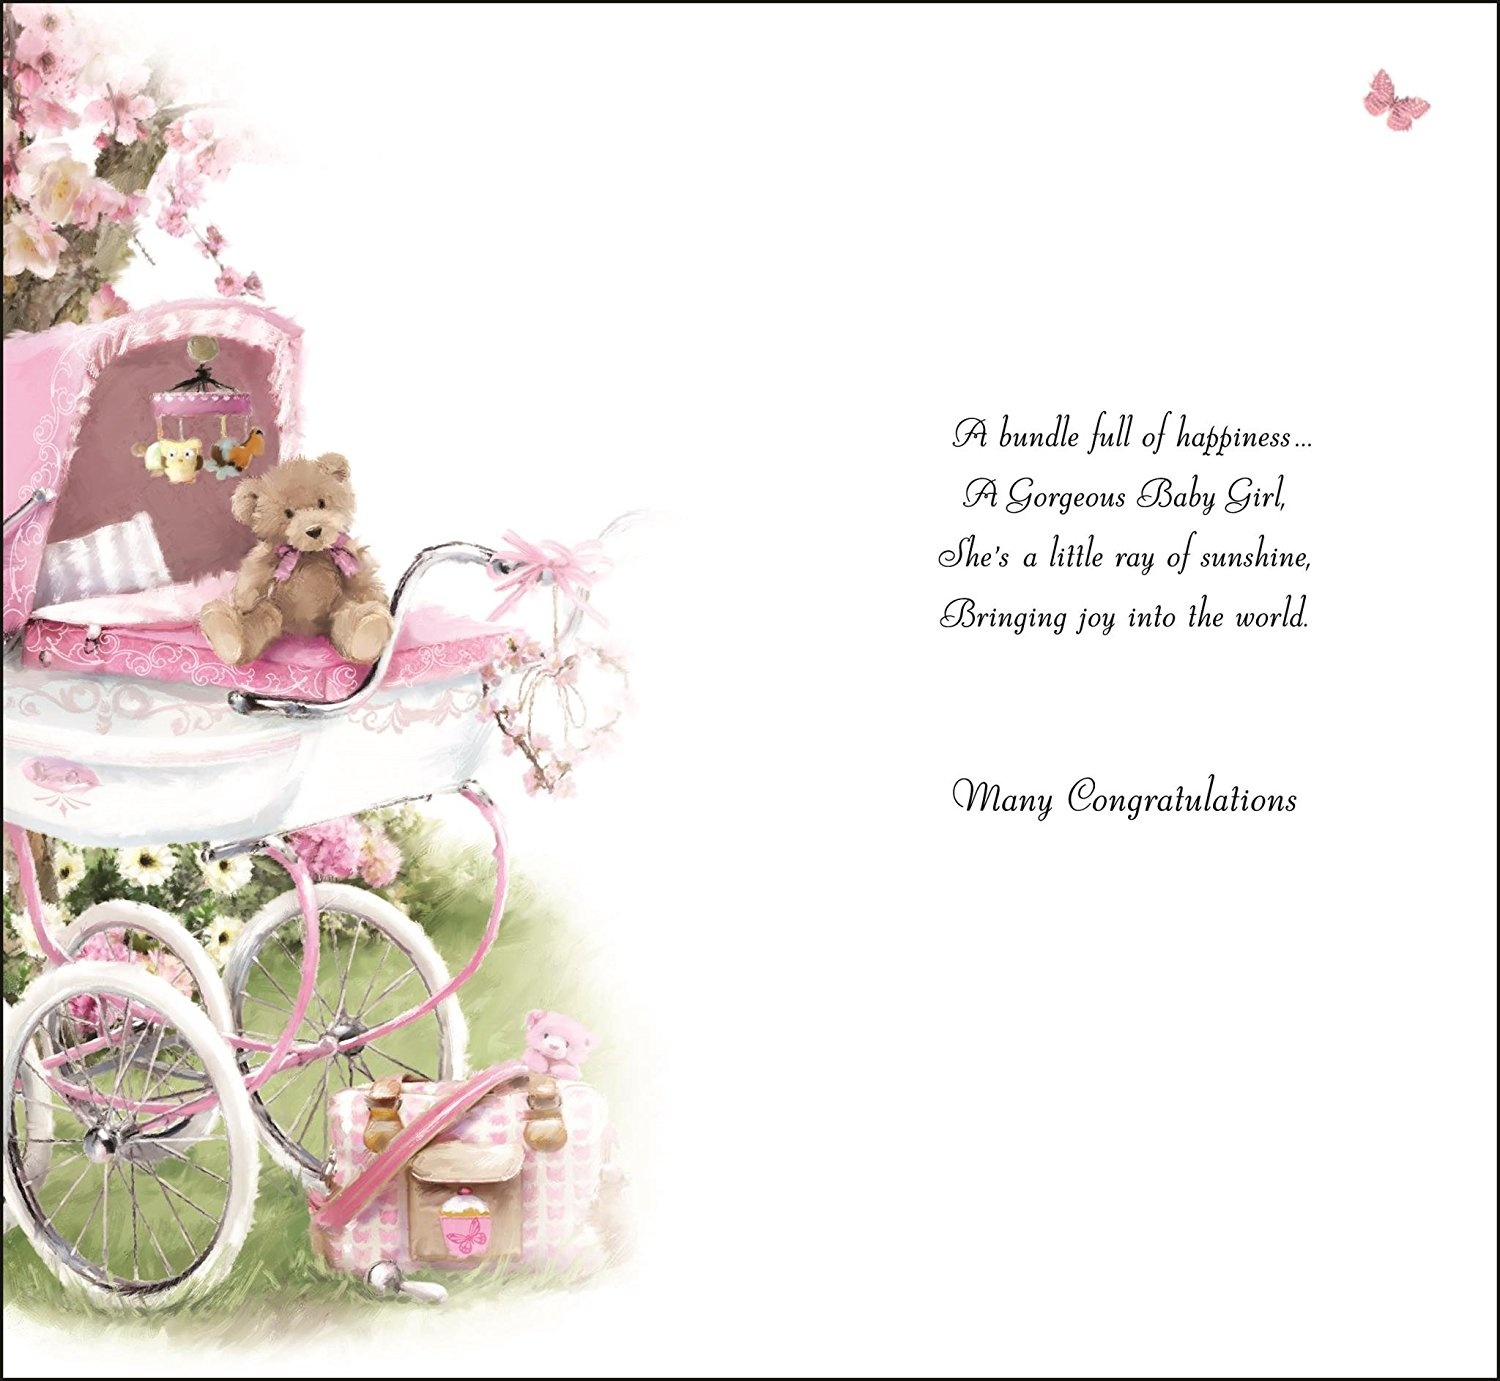 Congratulations On Baby Girl Card - Demir.iso-Consulting.co - Congratulations On Your Baby Girl Free Printable Cards